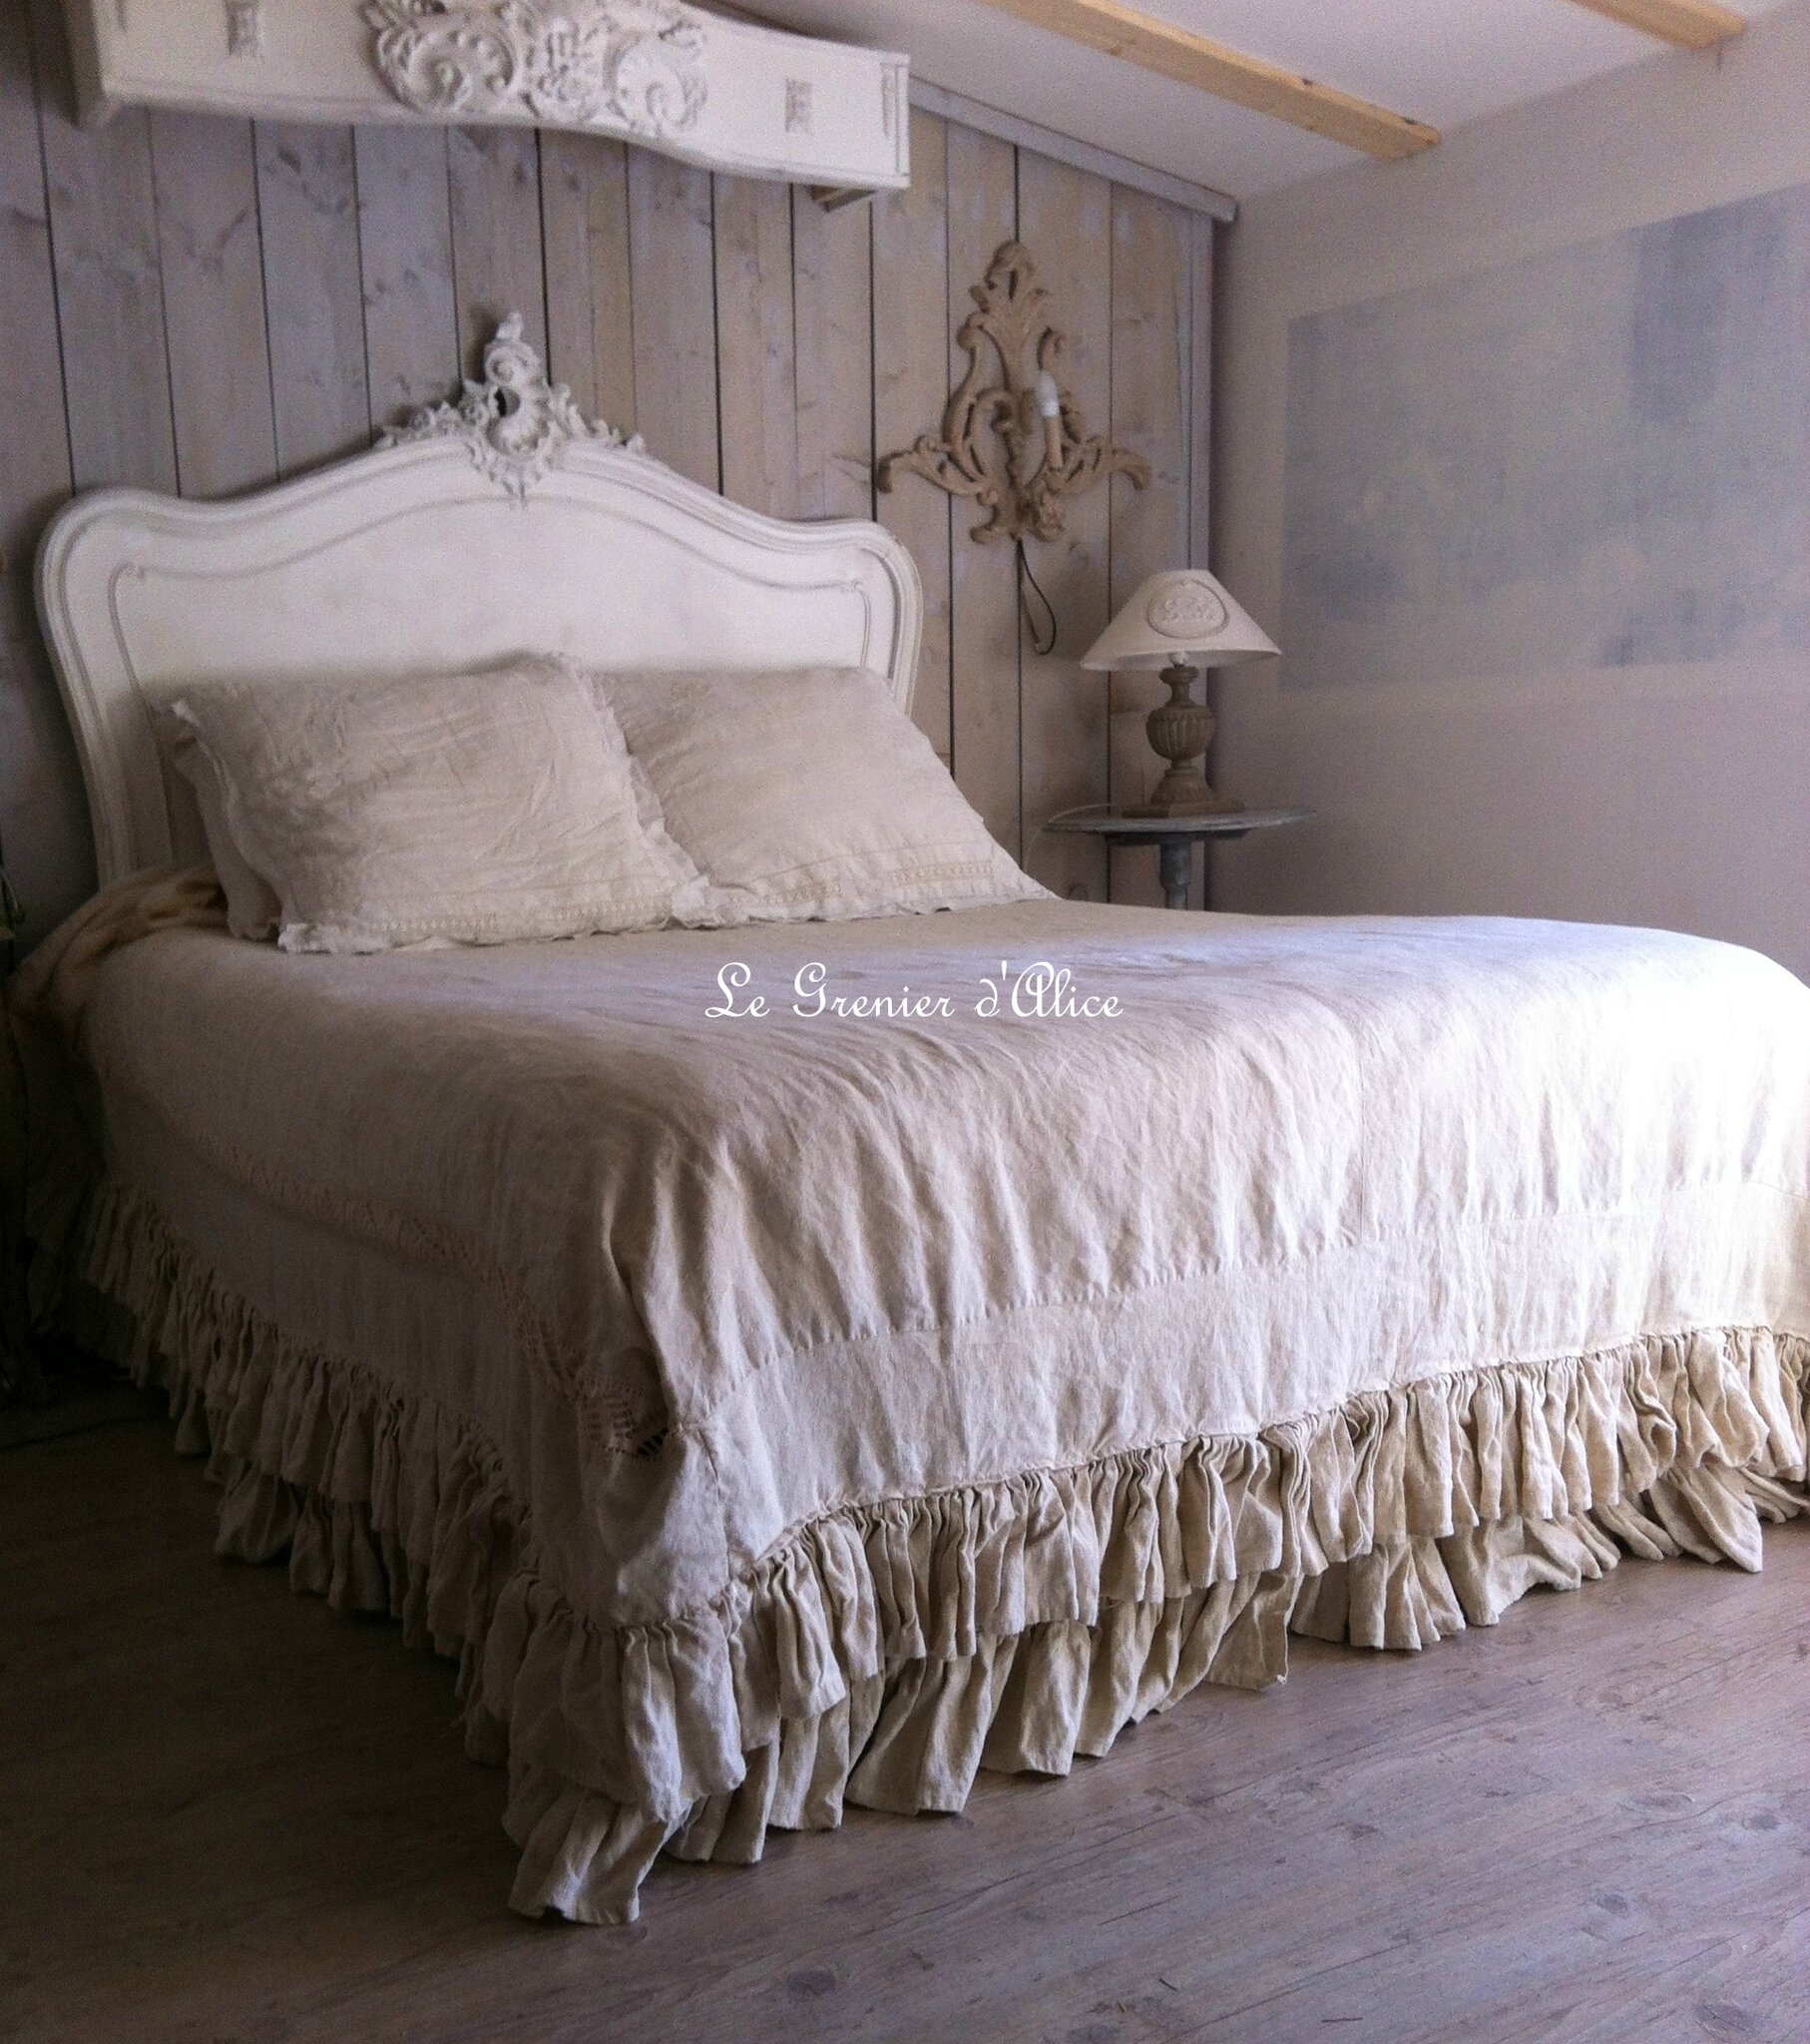 housse de couette volants tr s shabby chic le grenier. Black Bedroom Furniture Sets. Home Design Ideas